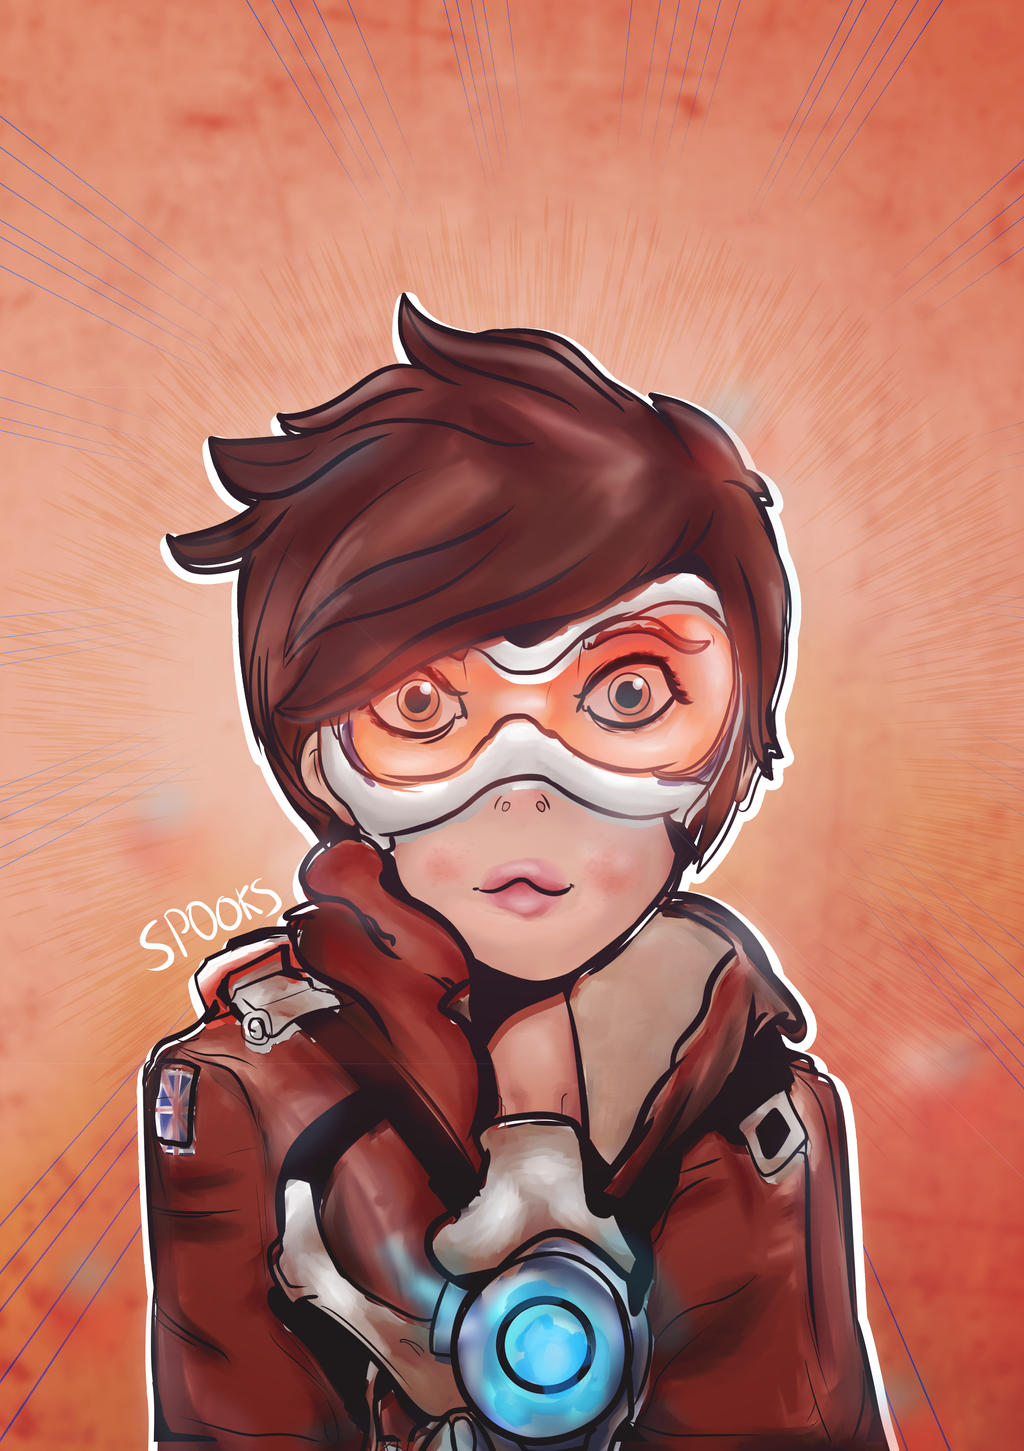 Tracer by spo00ks